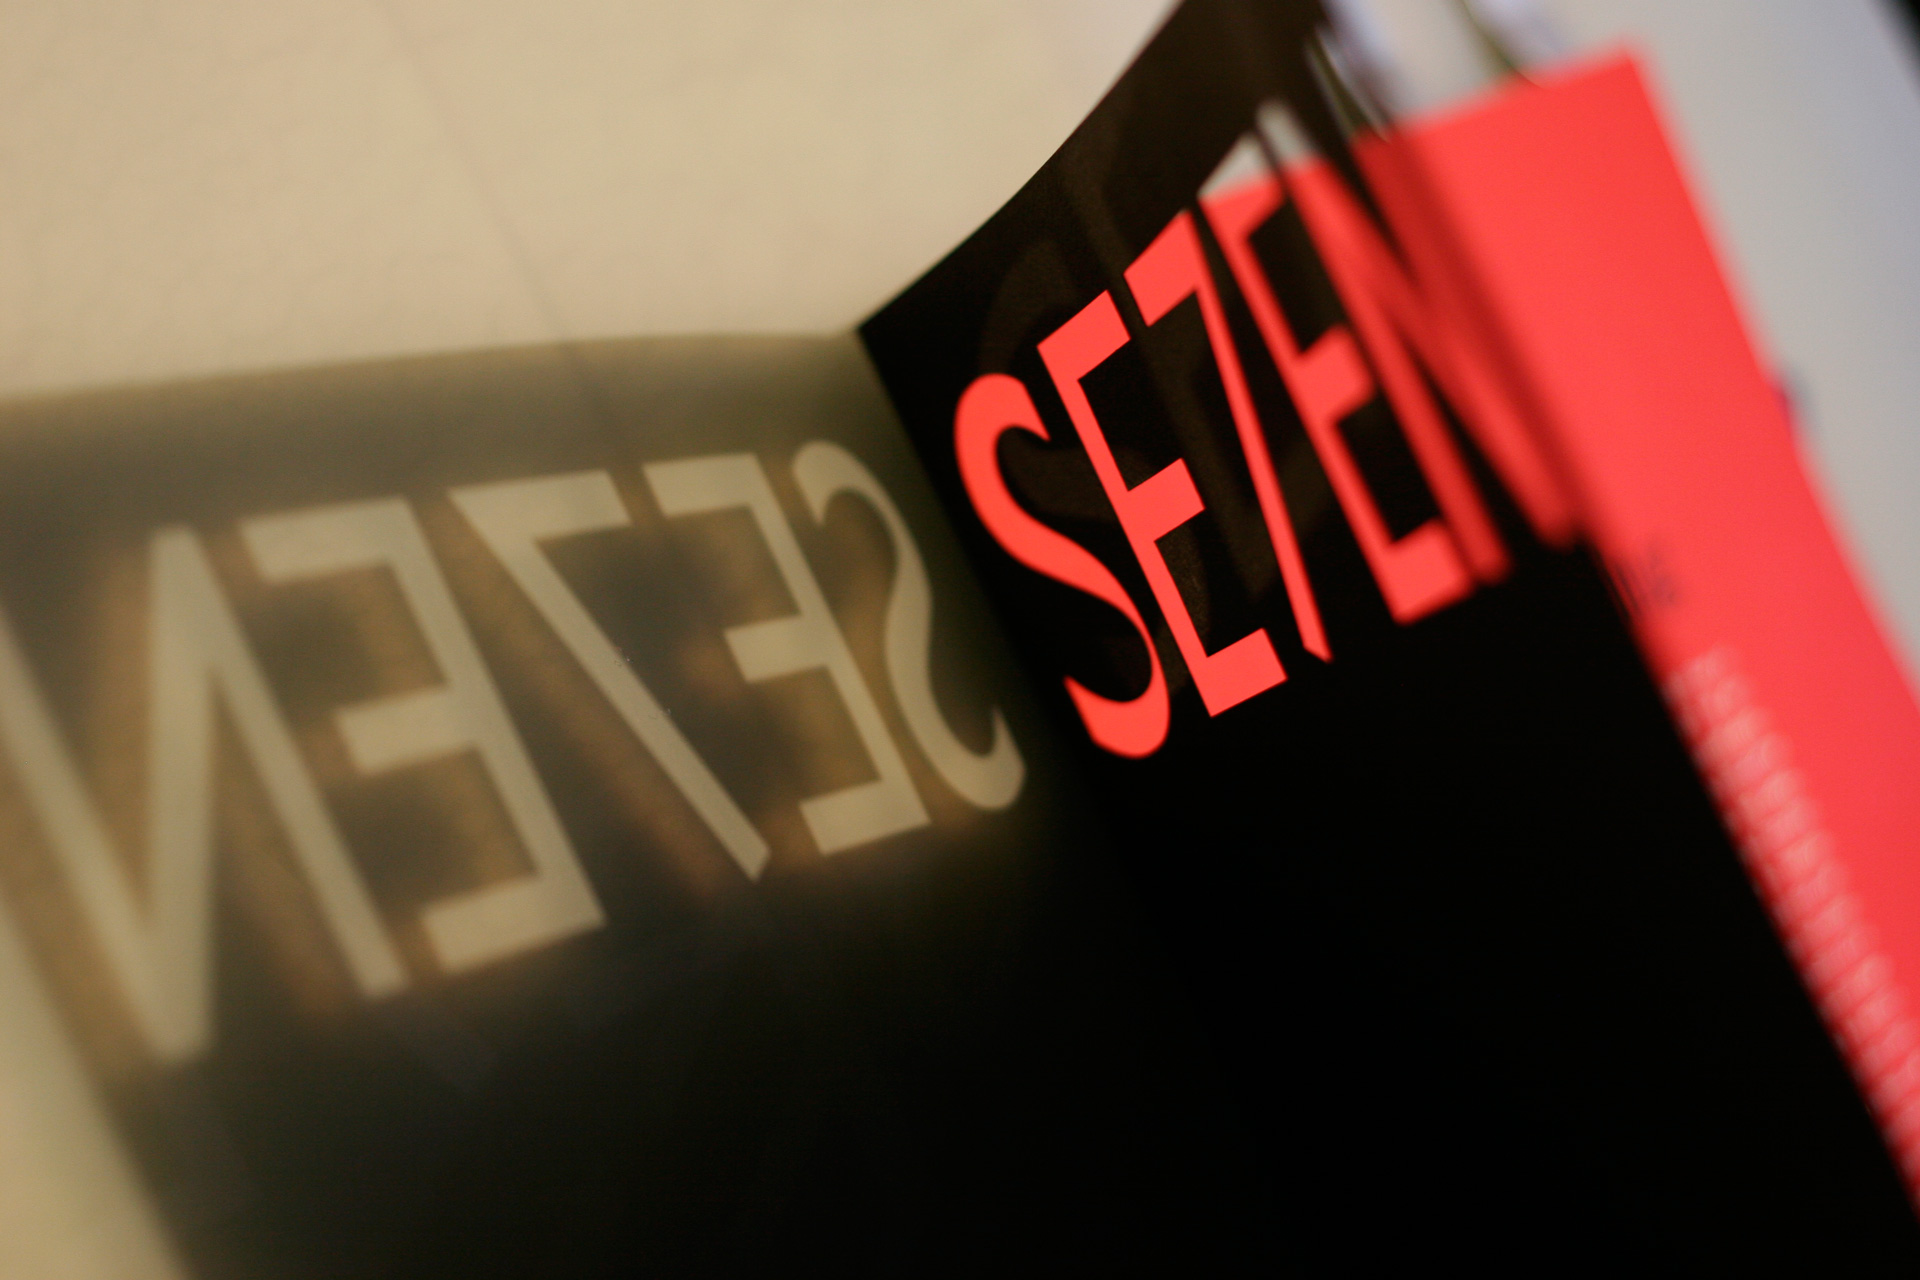 Light reflecting through a cutout of the word SE7EN on black cover of magazine with red interior